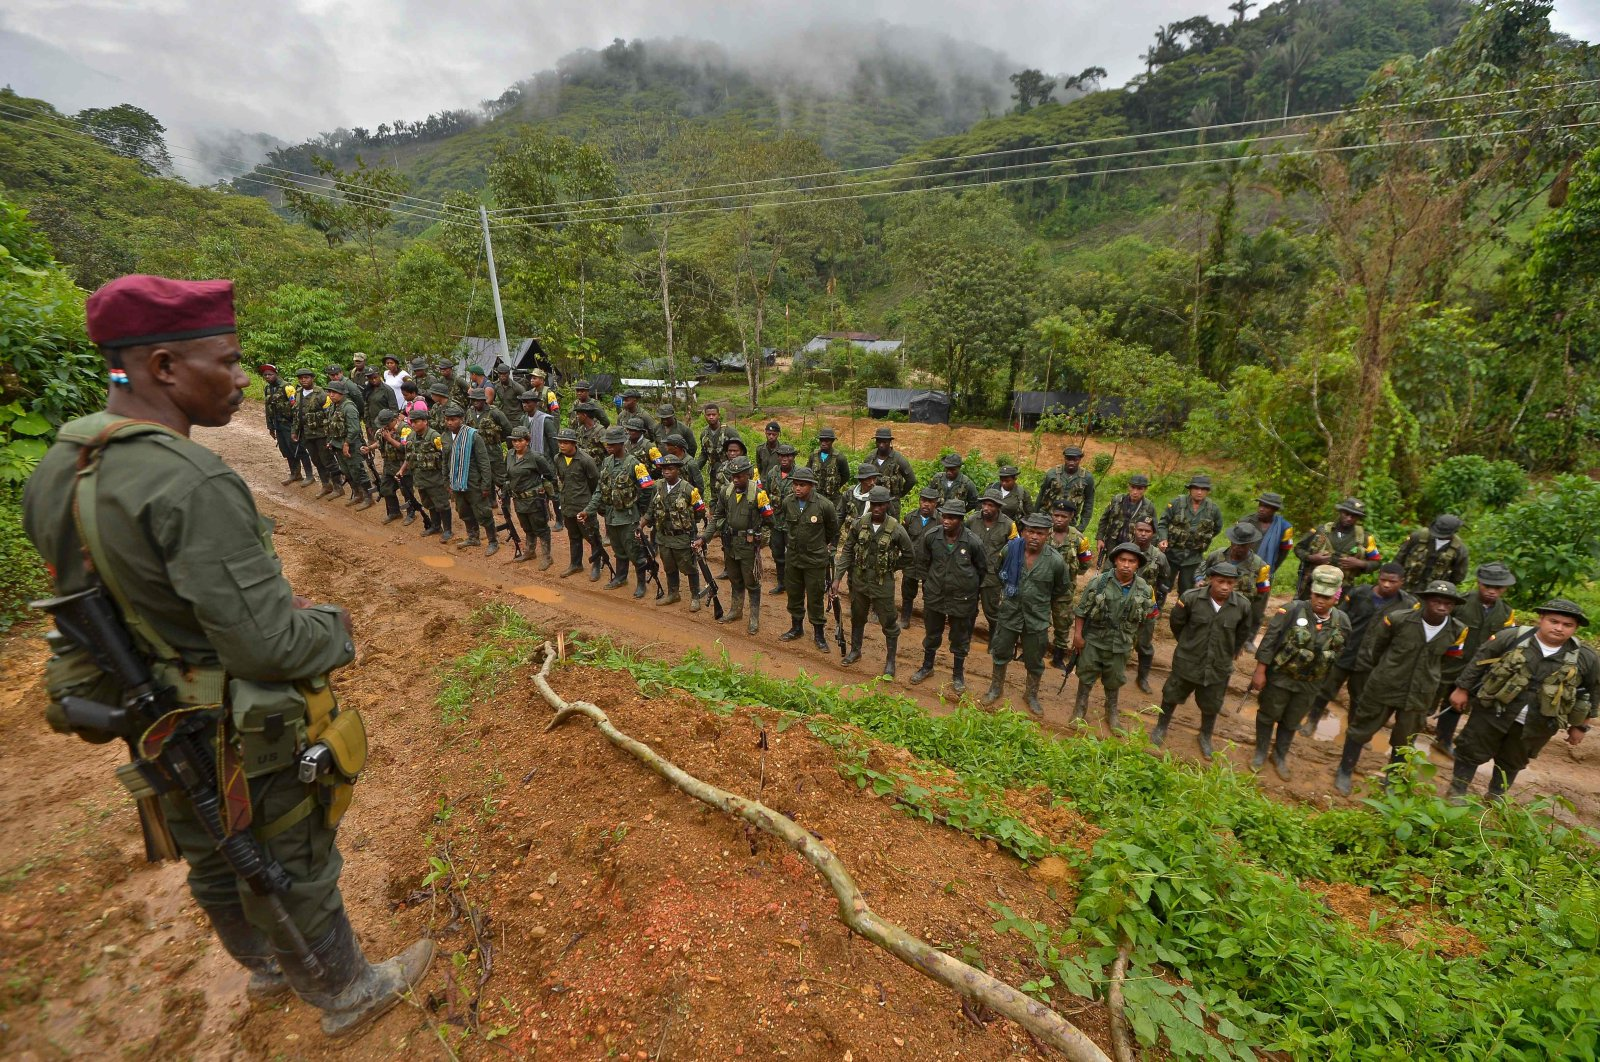 """Members of the Revolutionary Armed Forces of Colombia (FARC) guerrillas are seen at the """"Alfonso Artiaga"""" Front 29 FARC encampment in a rural area of Policarpa, department of Narino, Colombia, Jan. 17, 2017. (AFP Photo)"""